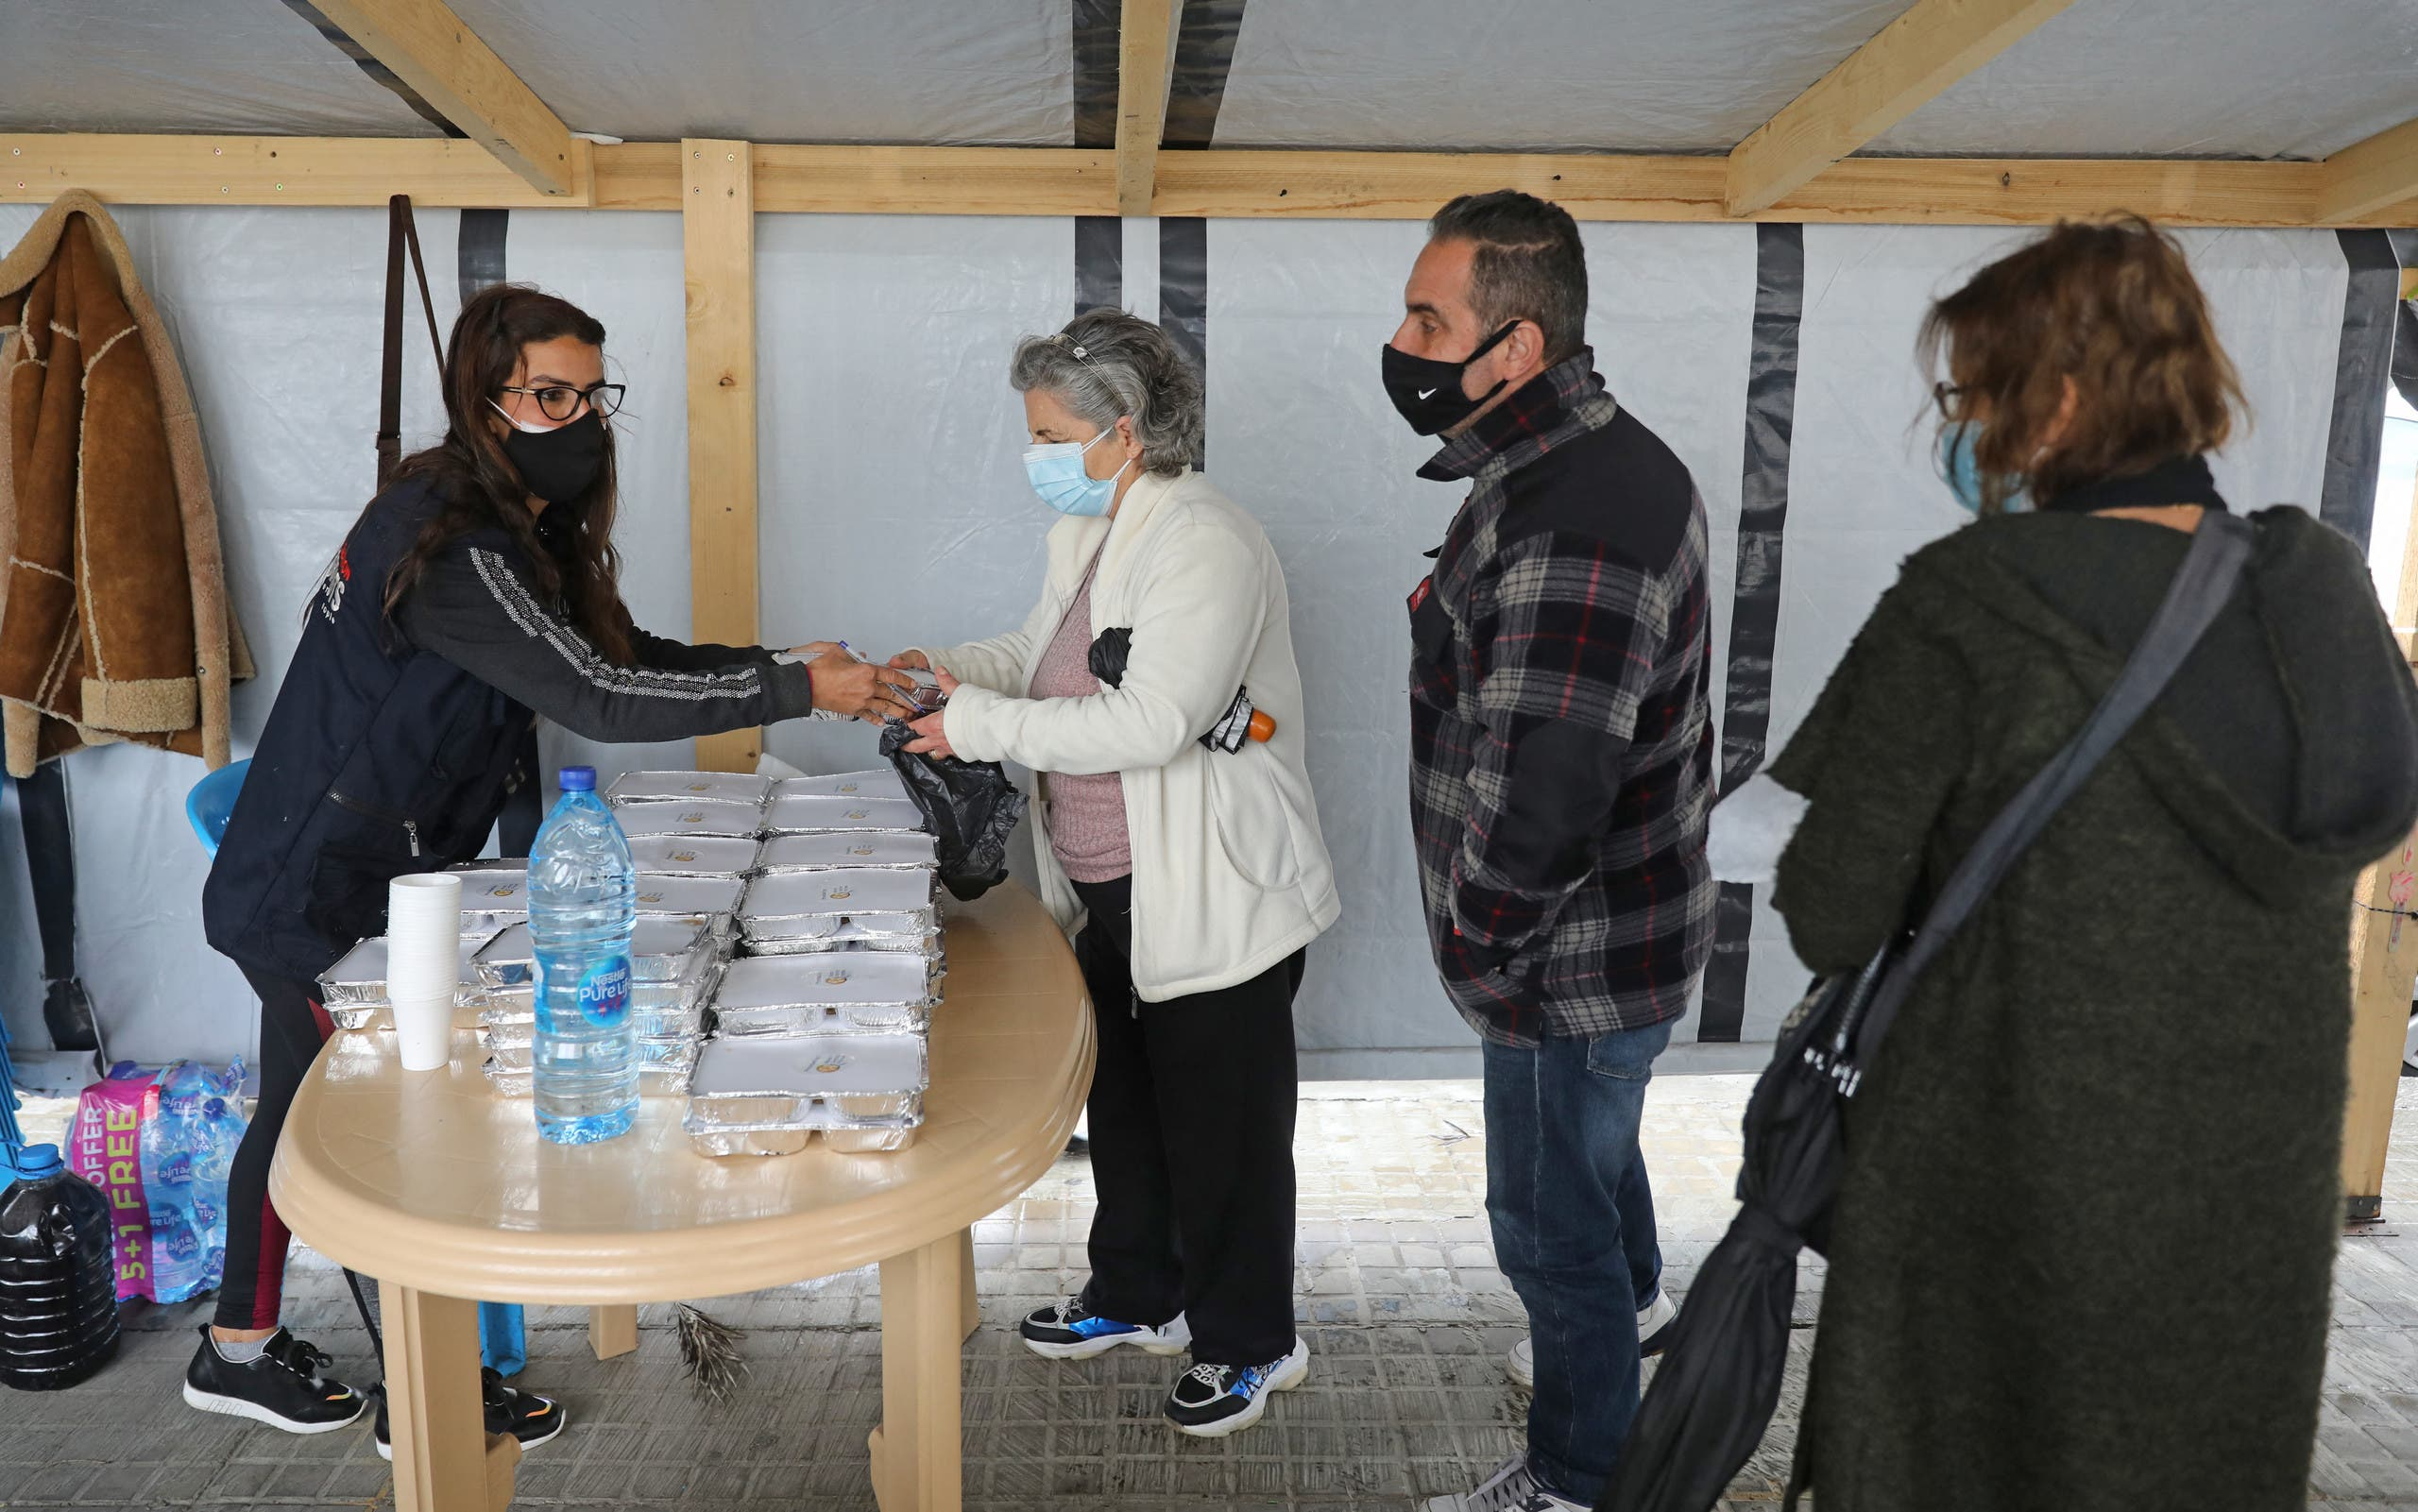 A volunteer gives out food handouts to people in need at the Lebanese Grassroots organisation in Beirut's Mar Mikhael district, which was hard hit by last year's port explosion, on March 24, 2021. (File photo: AFP)